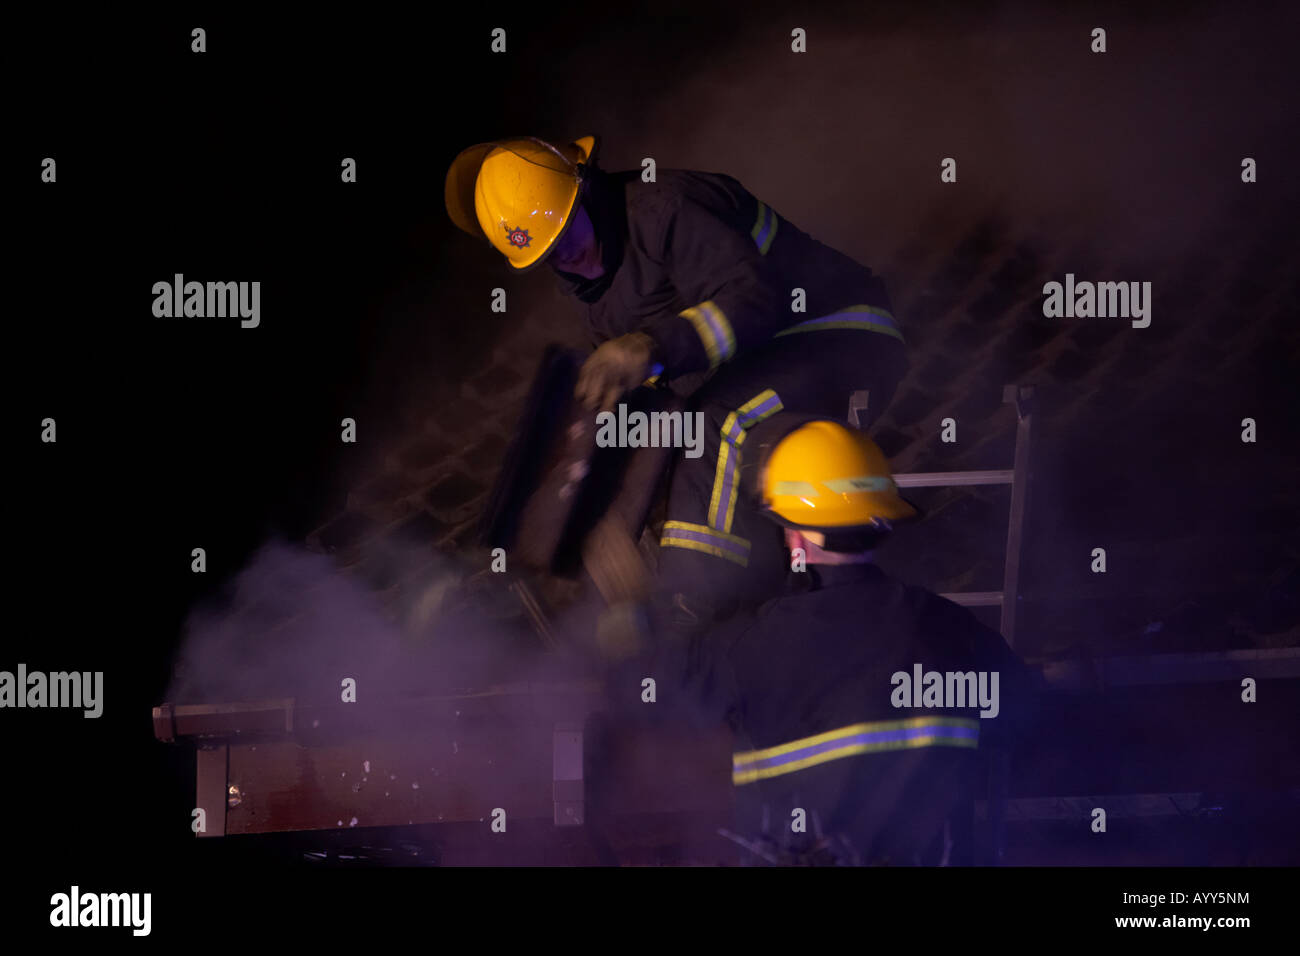 firefighters removing roof tiles from the roof of a burning house to get access to the fire below - Stock Image